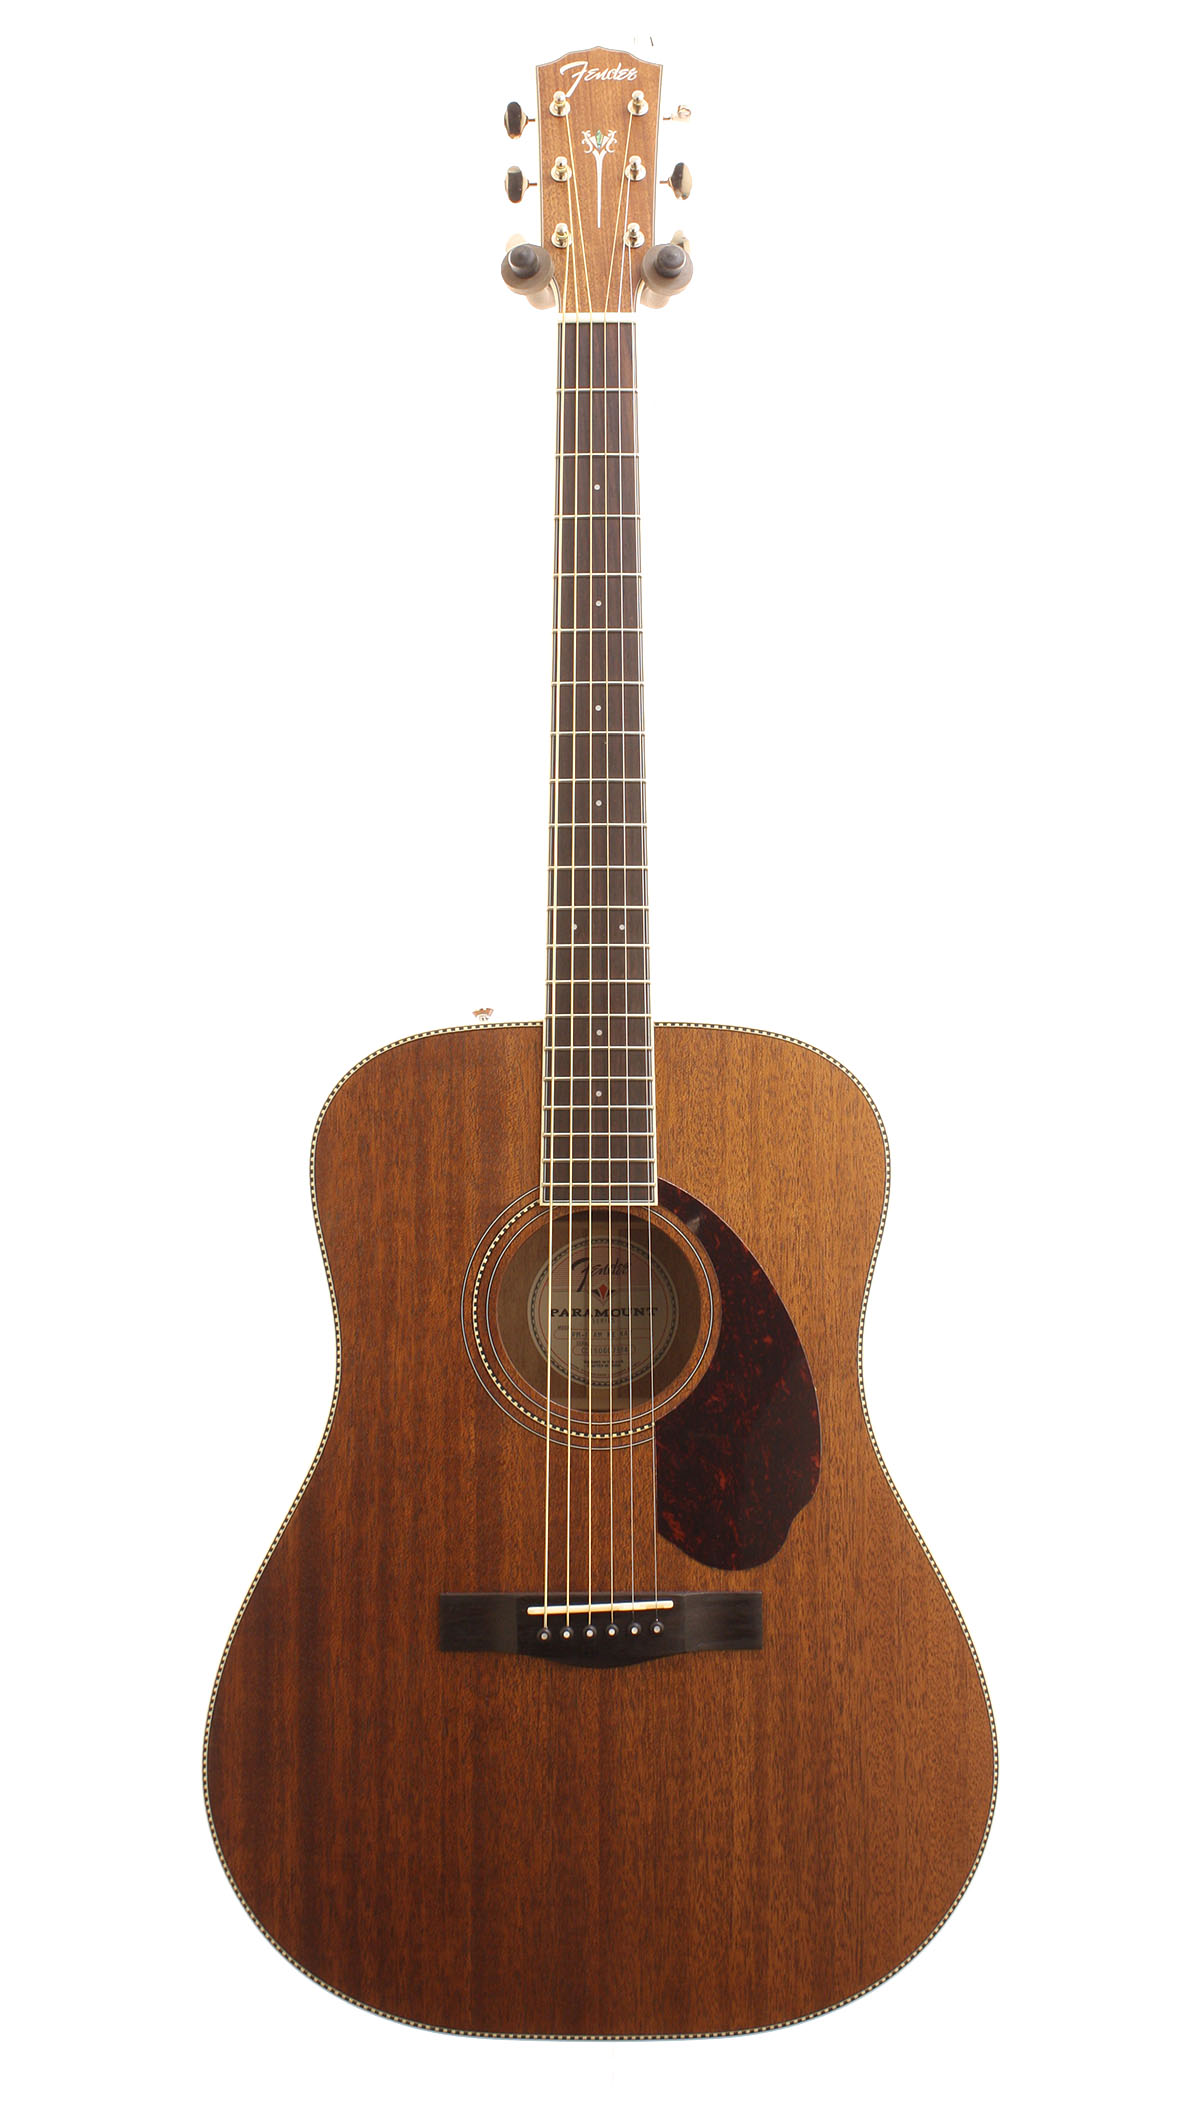 fender pm 1 all solid paramount series guitars basses scayles music. Black Bedroom Furniture Sets. Home Design Ideas